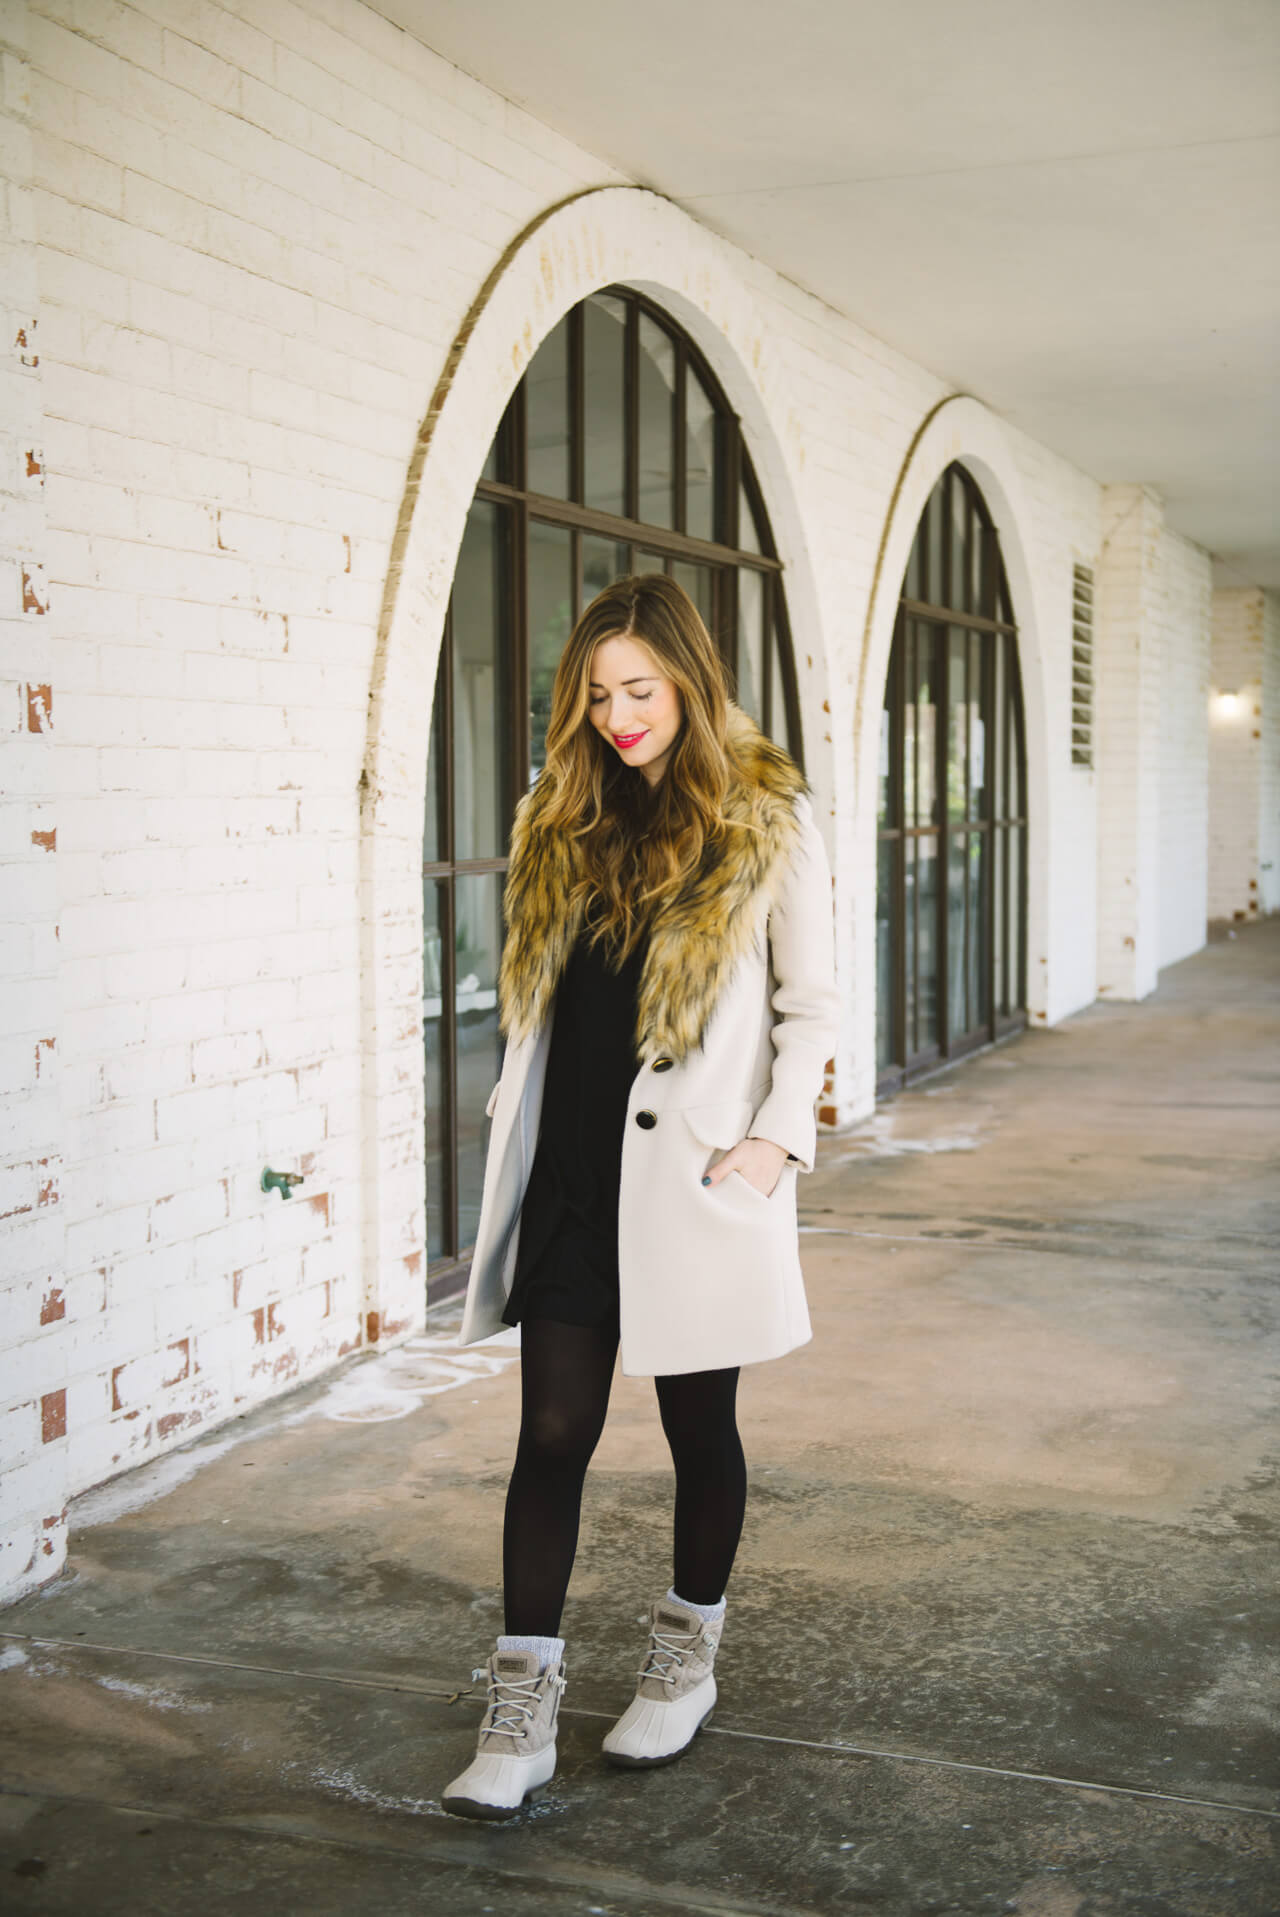 styling duck boots with a black turtleneck dress and a faux fur jacket